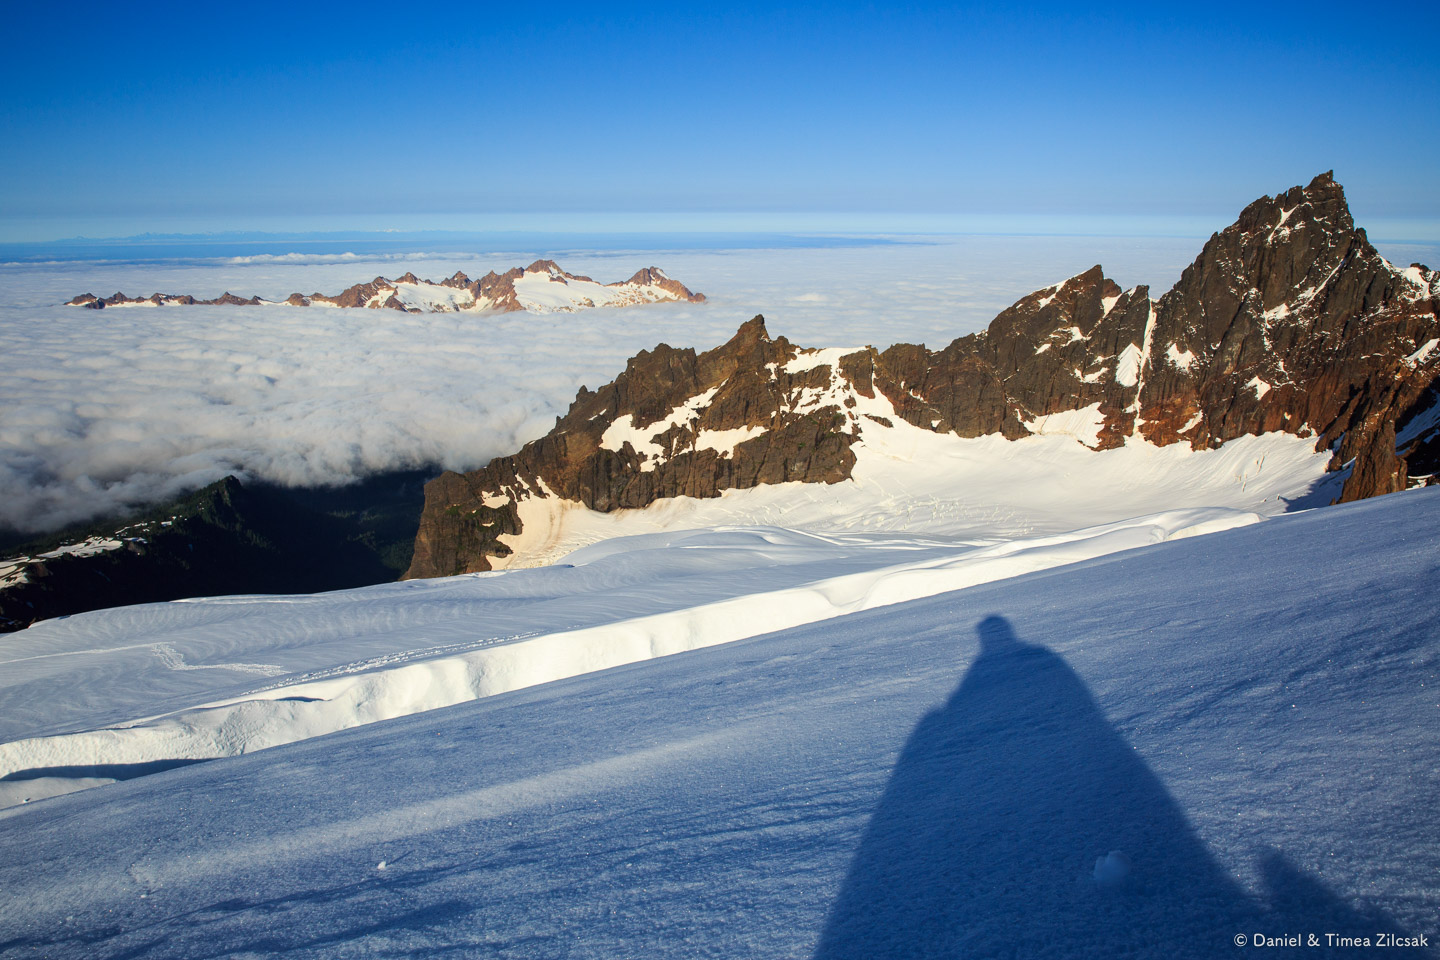 Climbing Mt Baker - Taking a break above a large crevasse